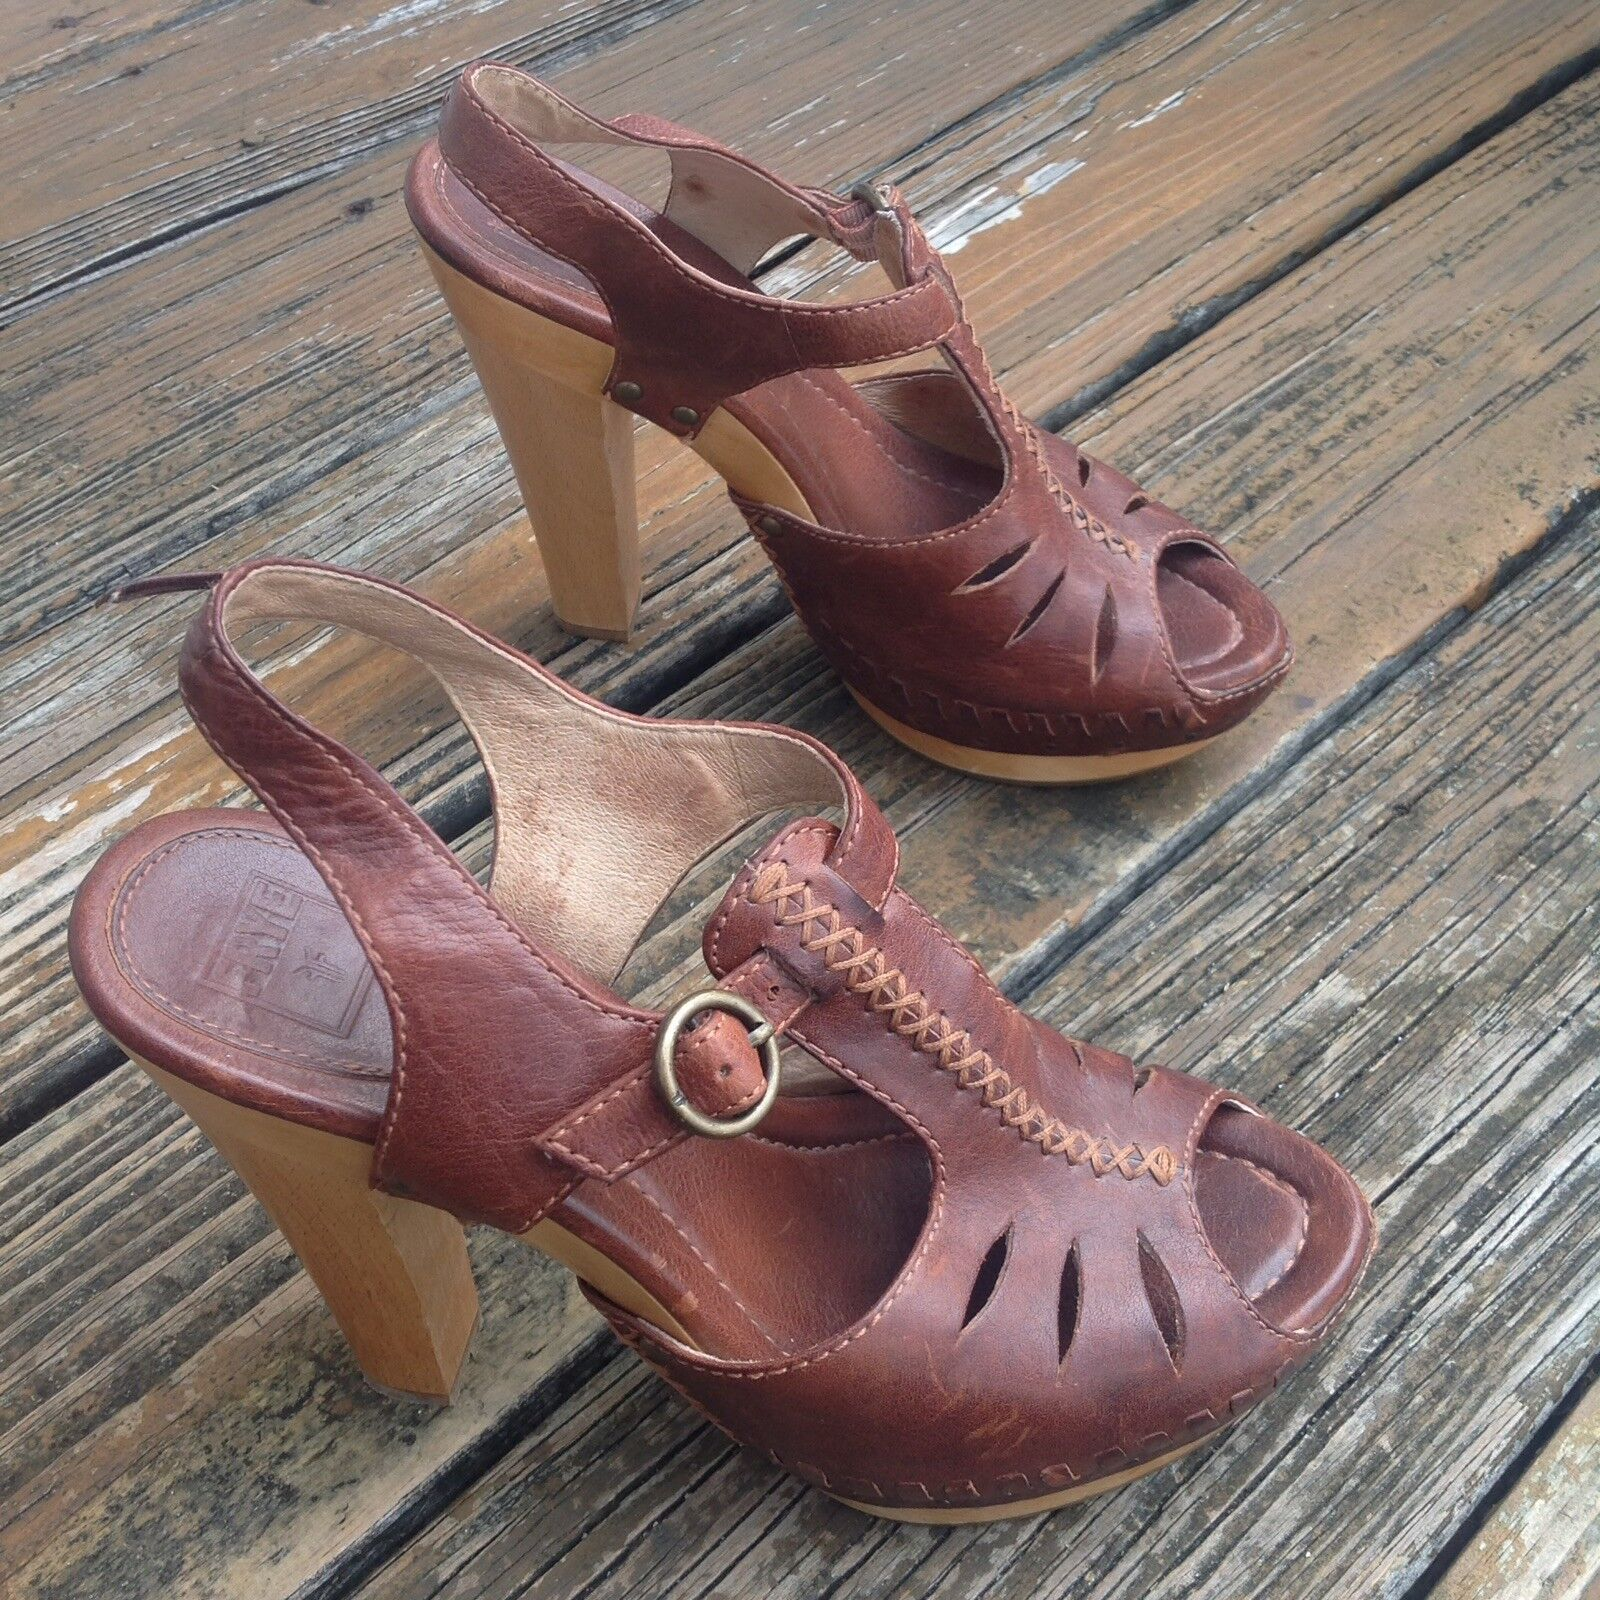 Frye braun Leather Fran X Stitch Platform Wood Wood Wood Peep Toe Sandals 8.5 damen Heels e3261e